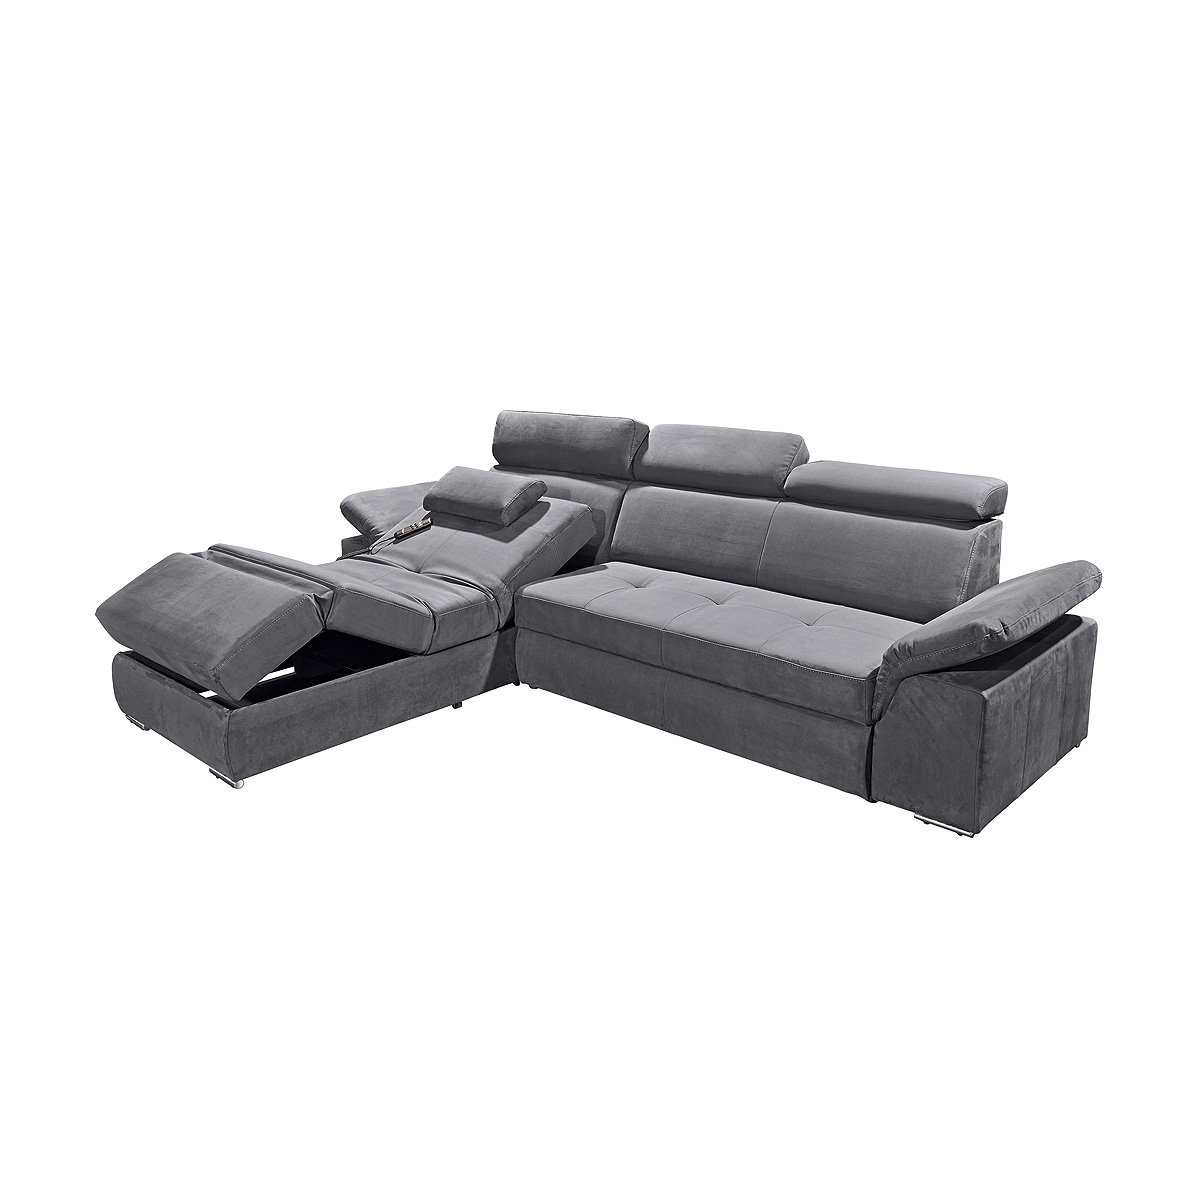 ecksofa napoli sofa relaxsofa wohnlandschaft in anthrazit. Black Bedroom Furniture Sets. Home Design Ideas